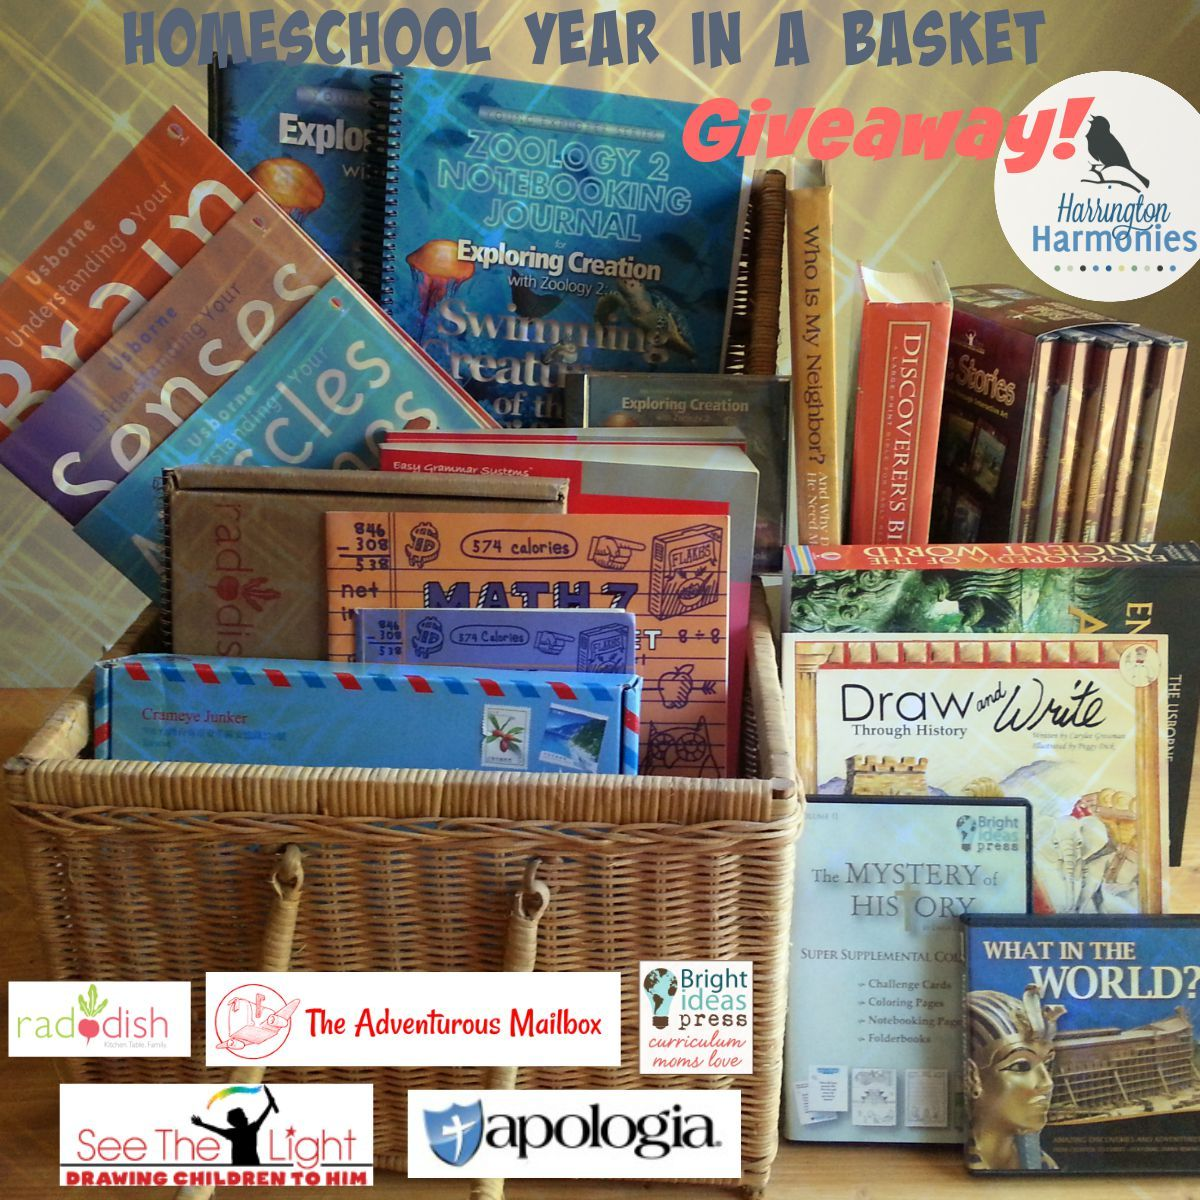 Homeschool Year In A Basket Giveaway